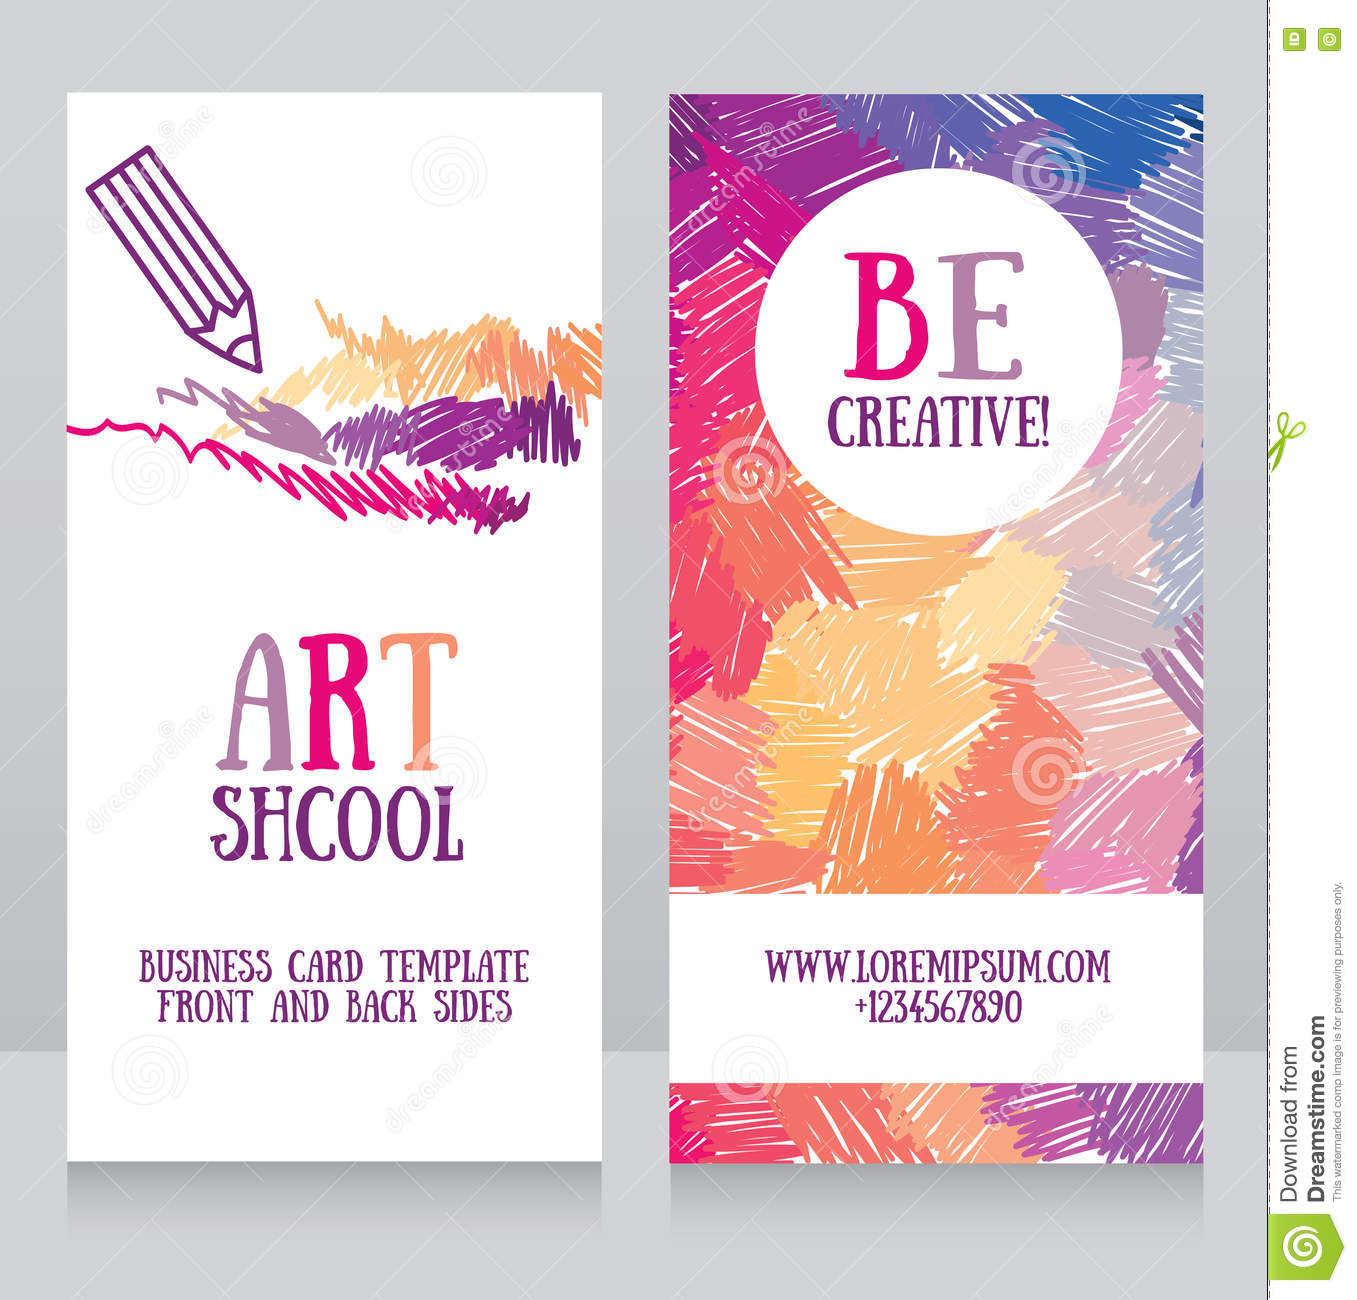 Business Cards Template For Art School Stock Vector - Image: 72479383